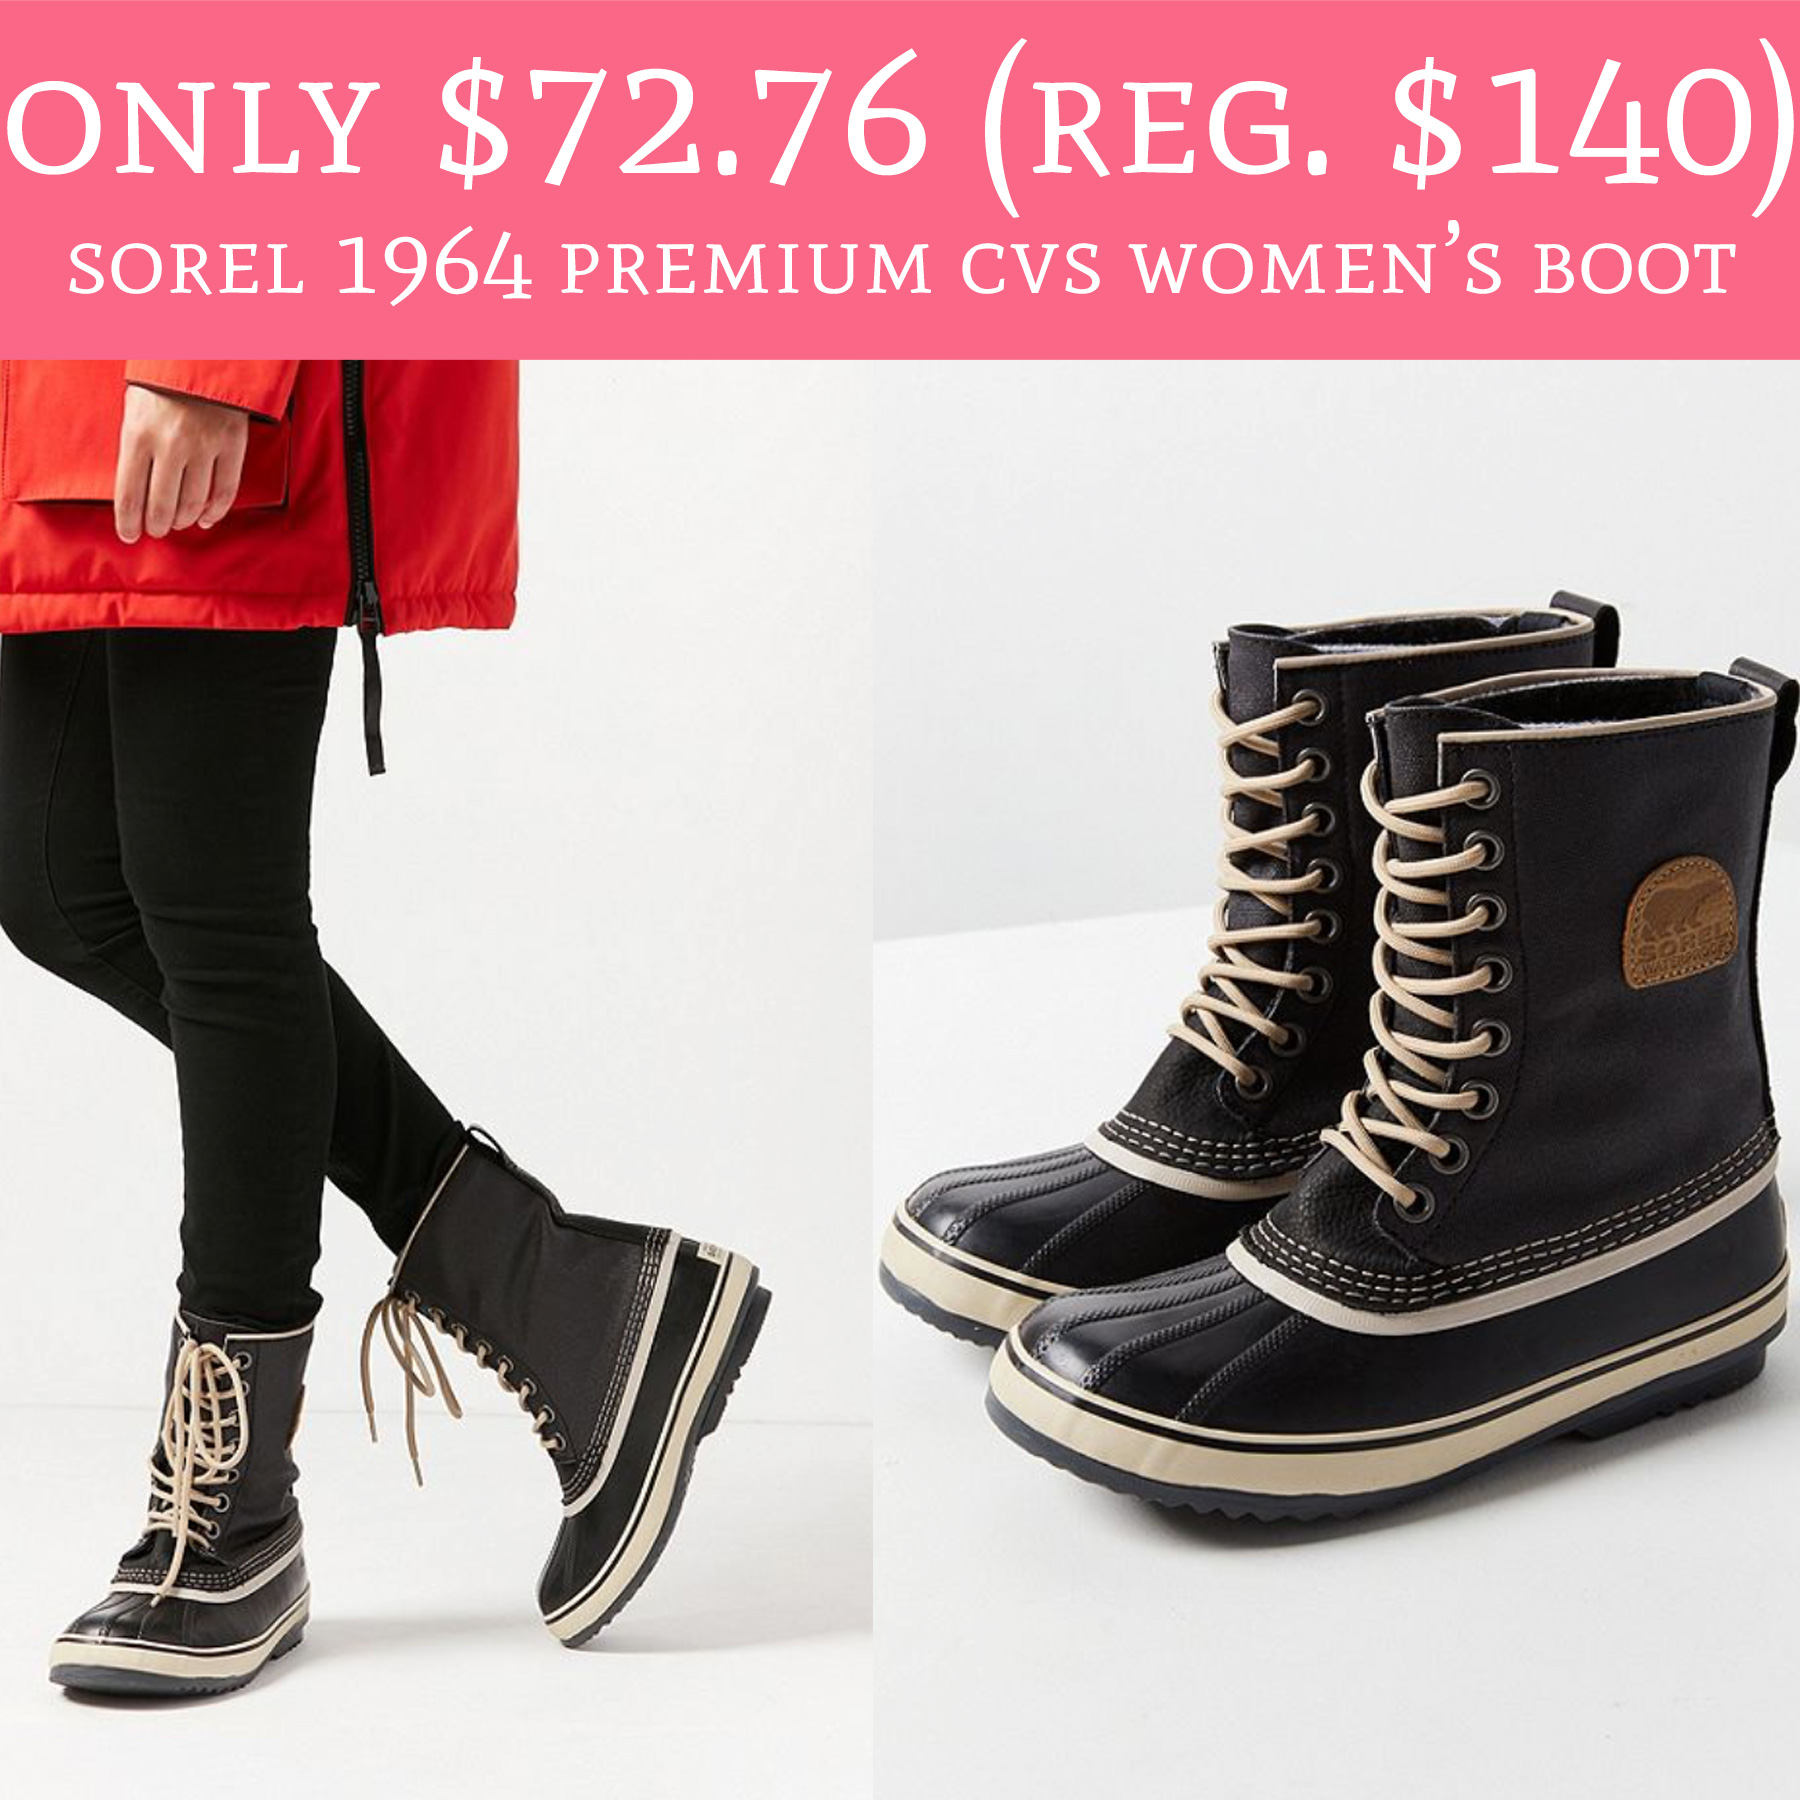 5cc98e1f302 HOT! Only  72.76 (Regular  140) Sorel 1964 Premium CVS Women s Boot ...